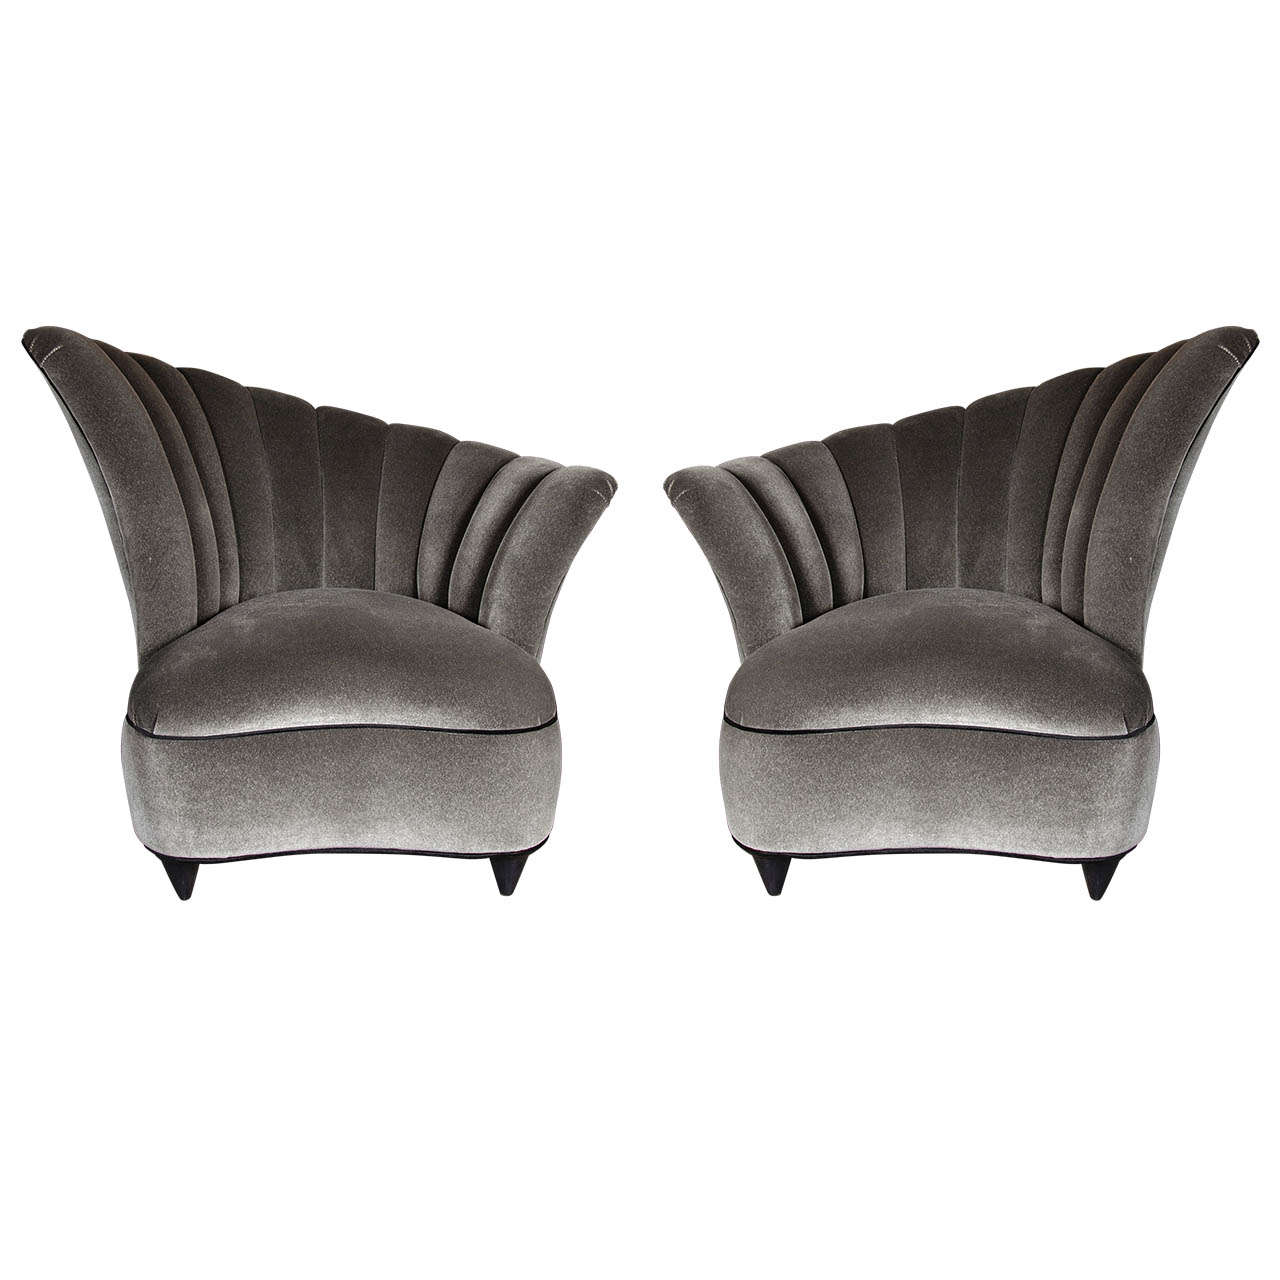 Genial Pair Of Hollywood Asymmetrical Tufted Hollywood Chairs For Sale